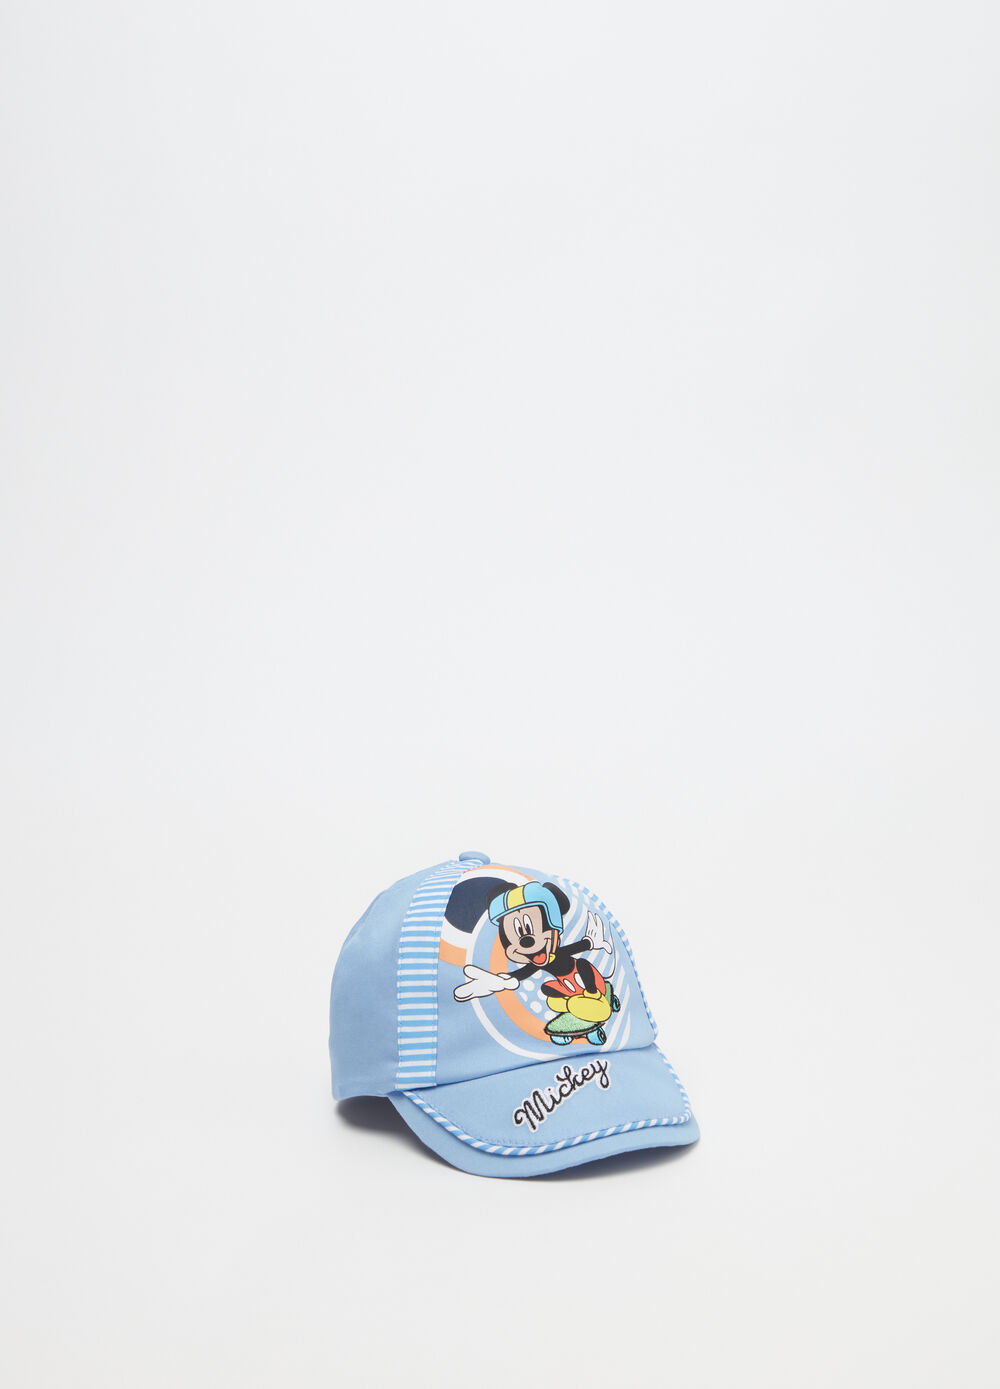 Faux layered Mickey Mouse baseball cap